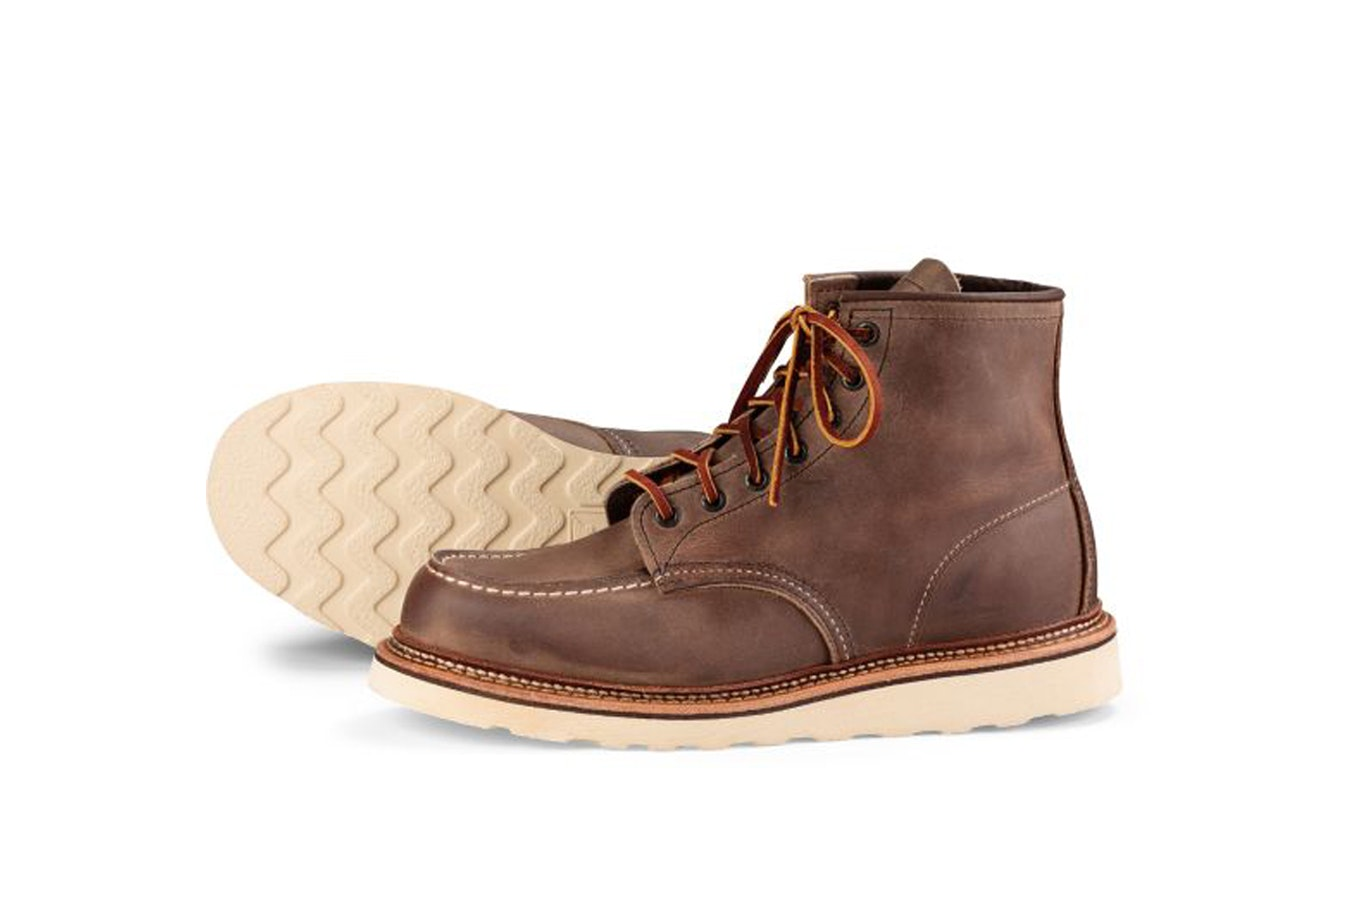 Nachos are no good in the winter Timberland Men's Rime